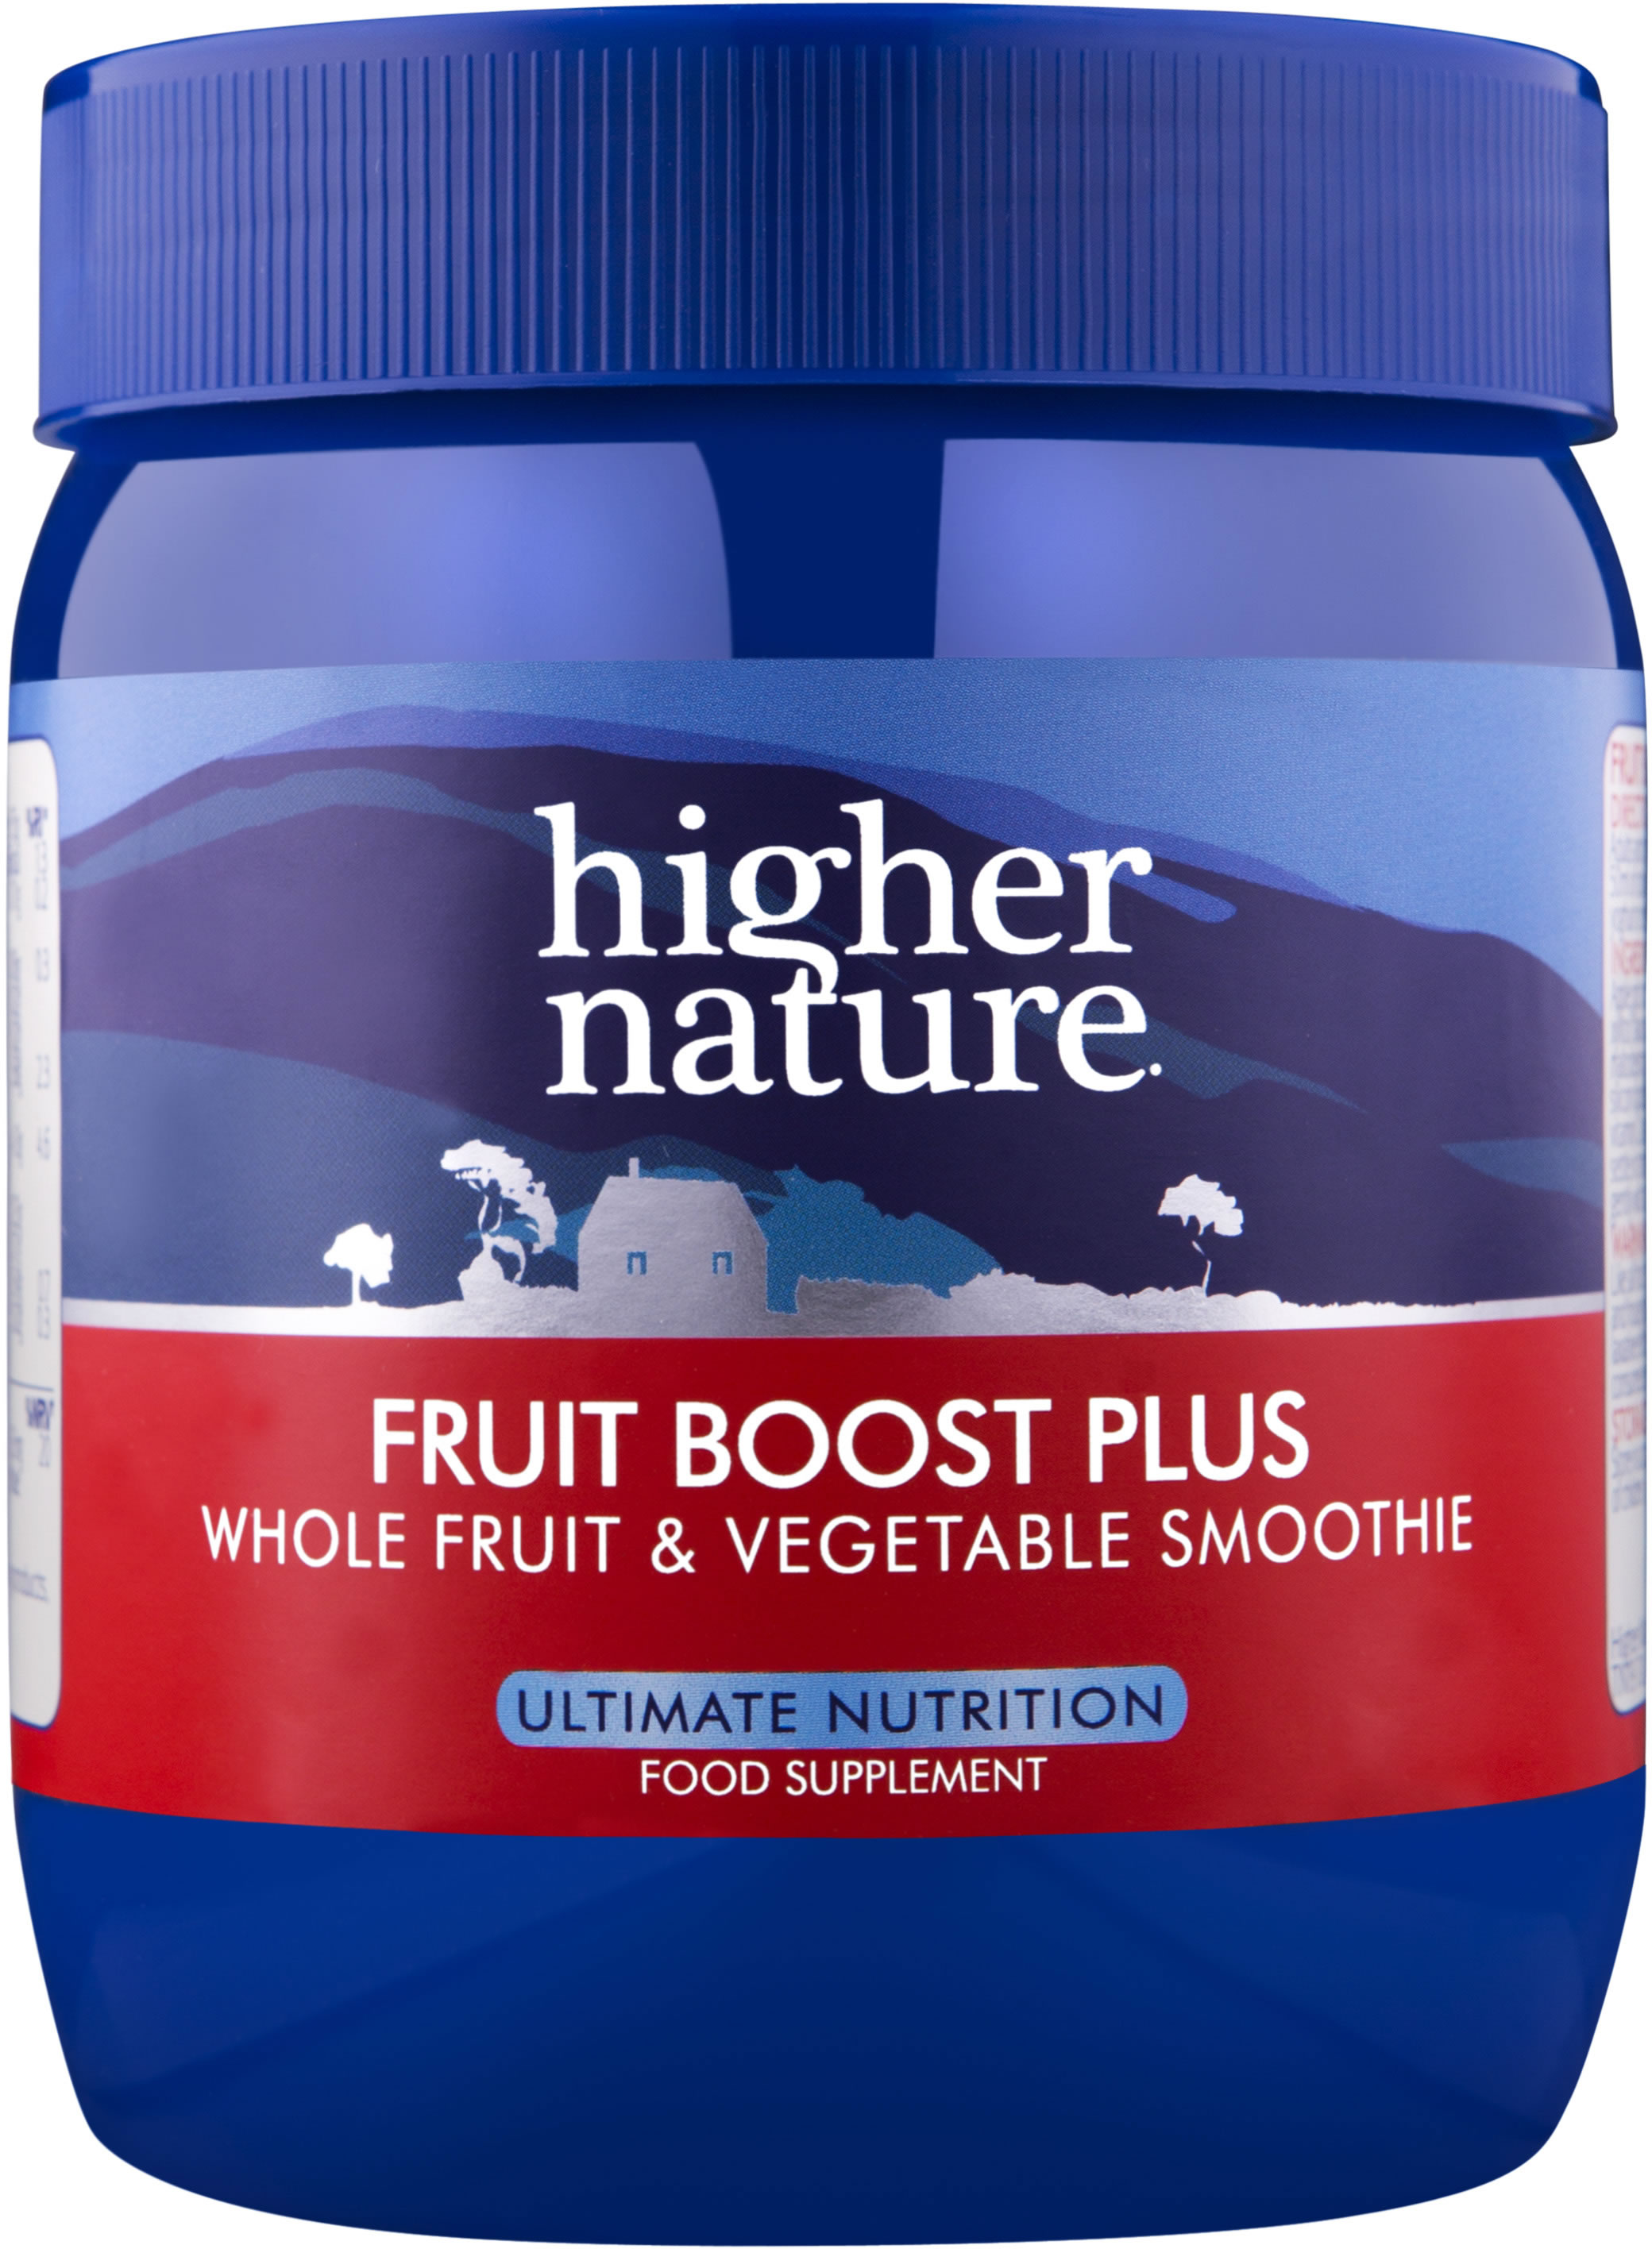 Fruit Boost Plus